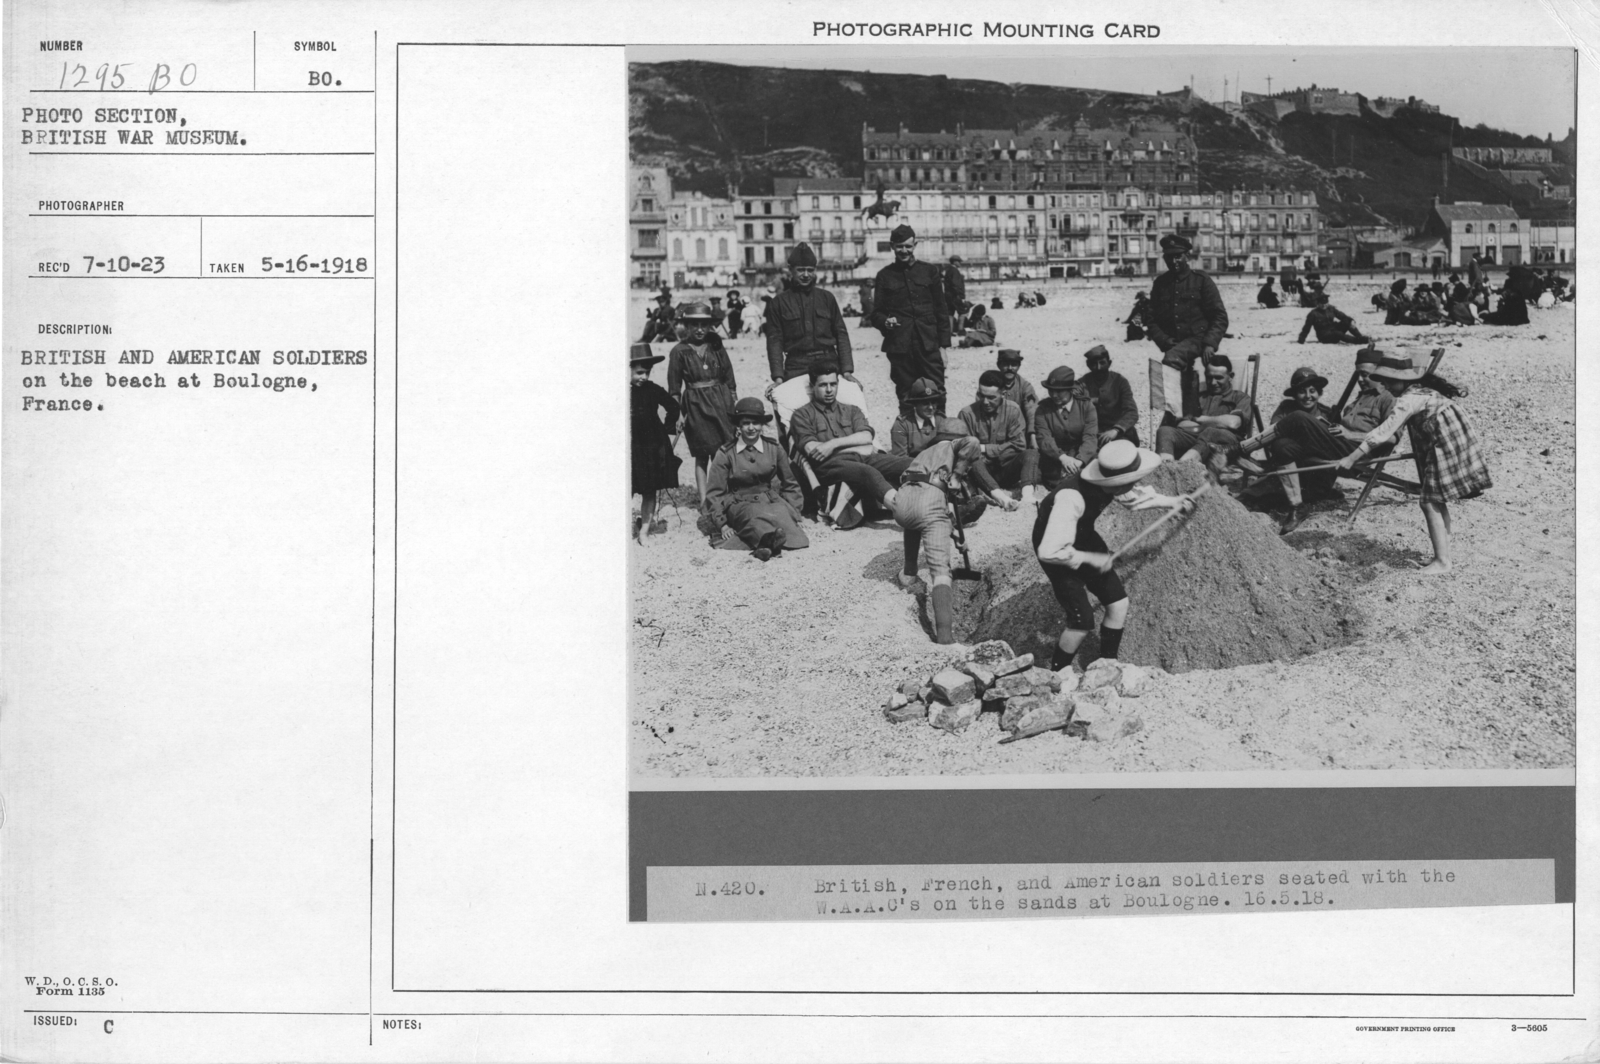 British and American soldiers on the beach at Boulogne, France. 5-16-1918